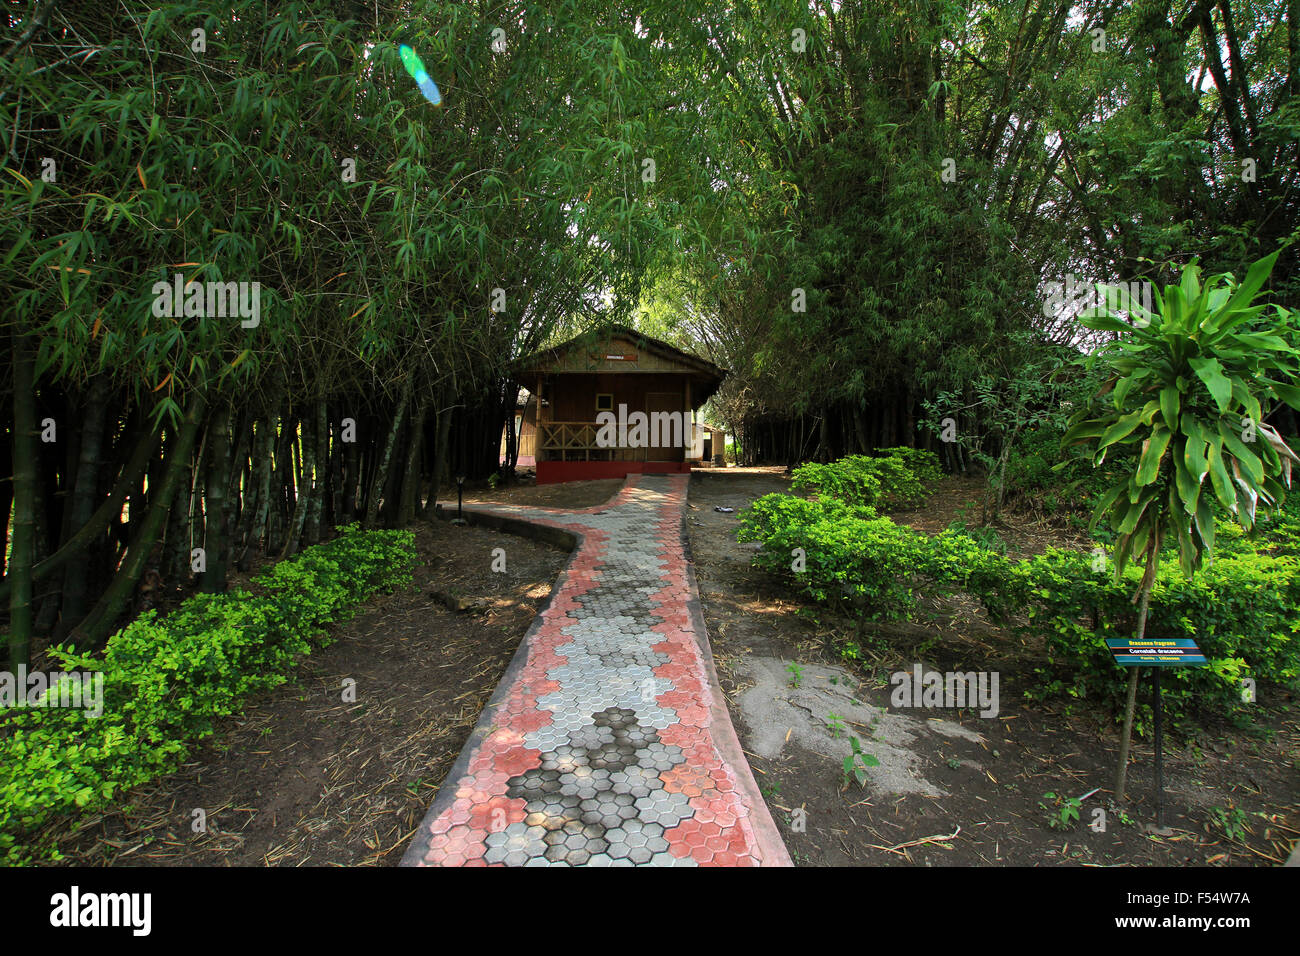 Bamboo groove Cottege in Periyar Tiger reserve Stock Photo